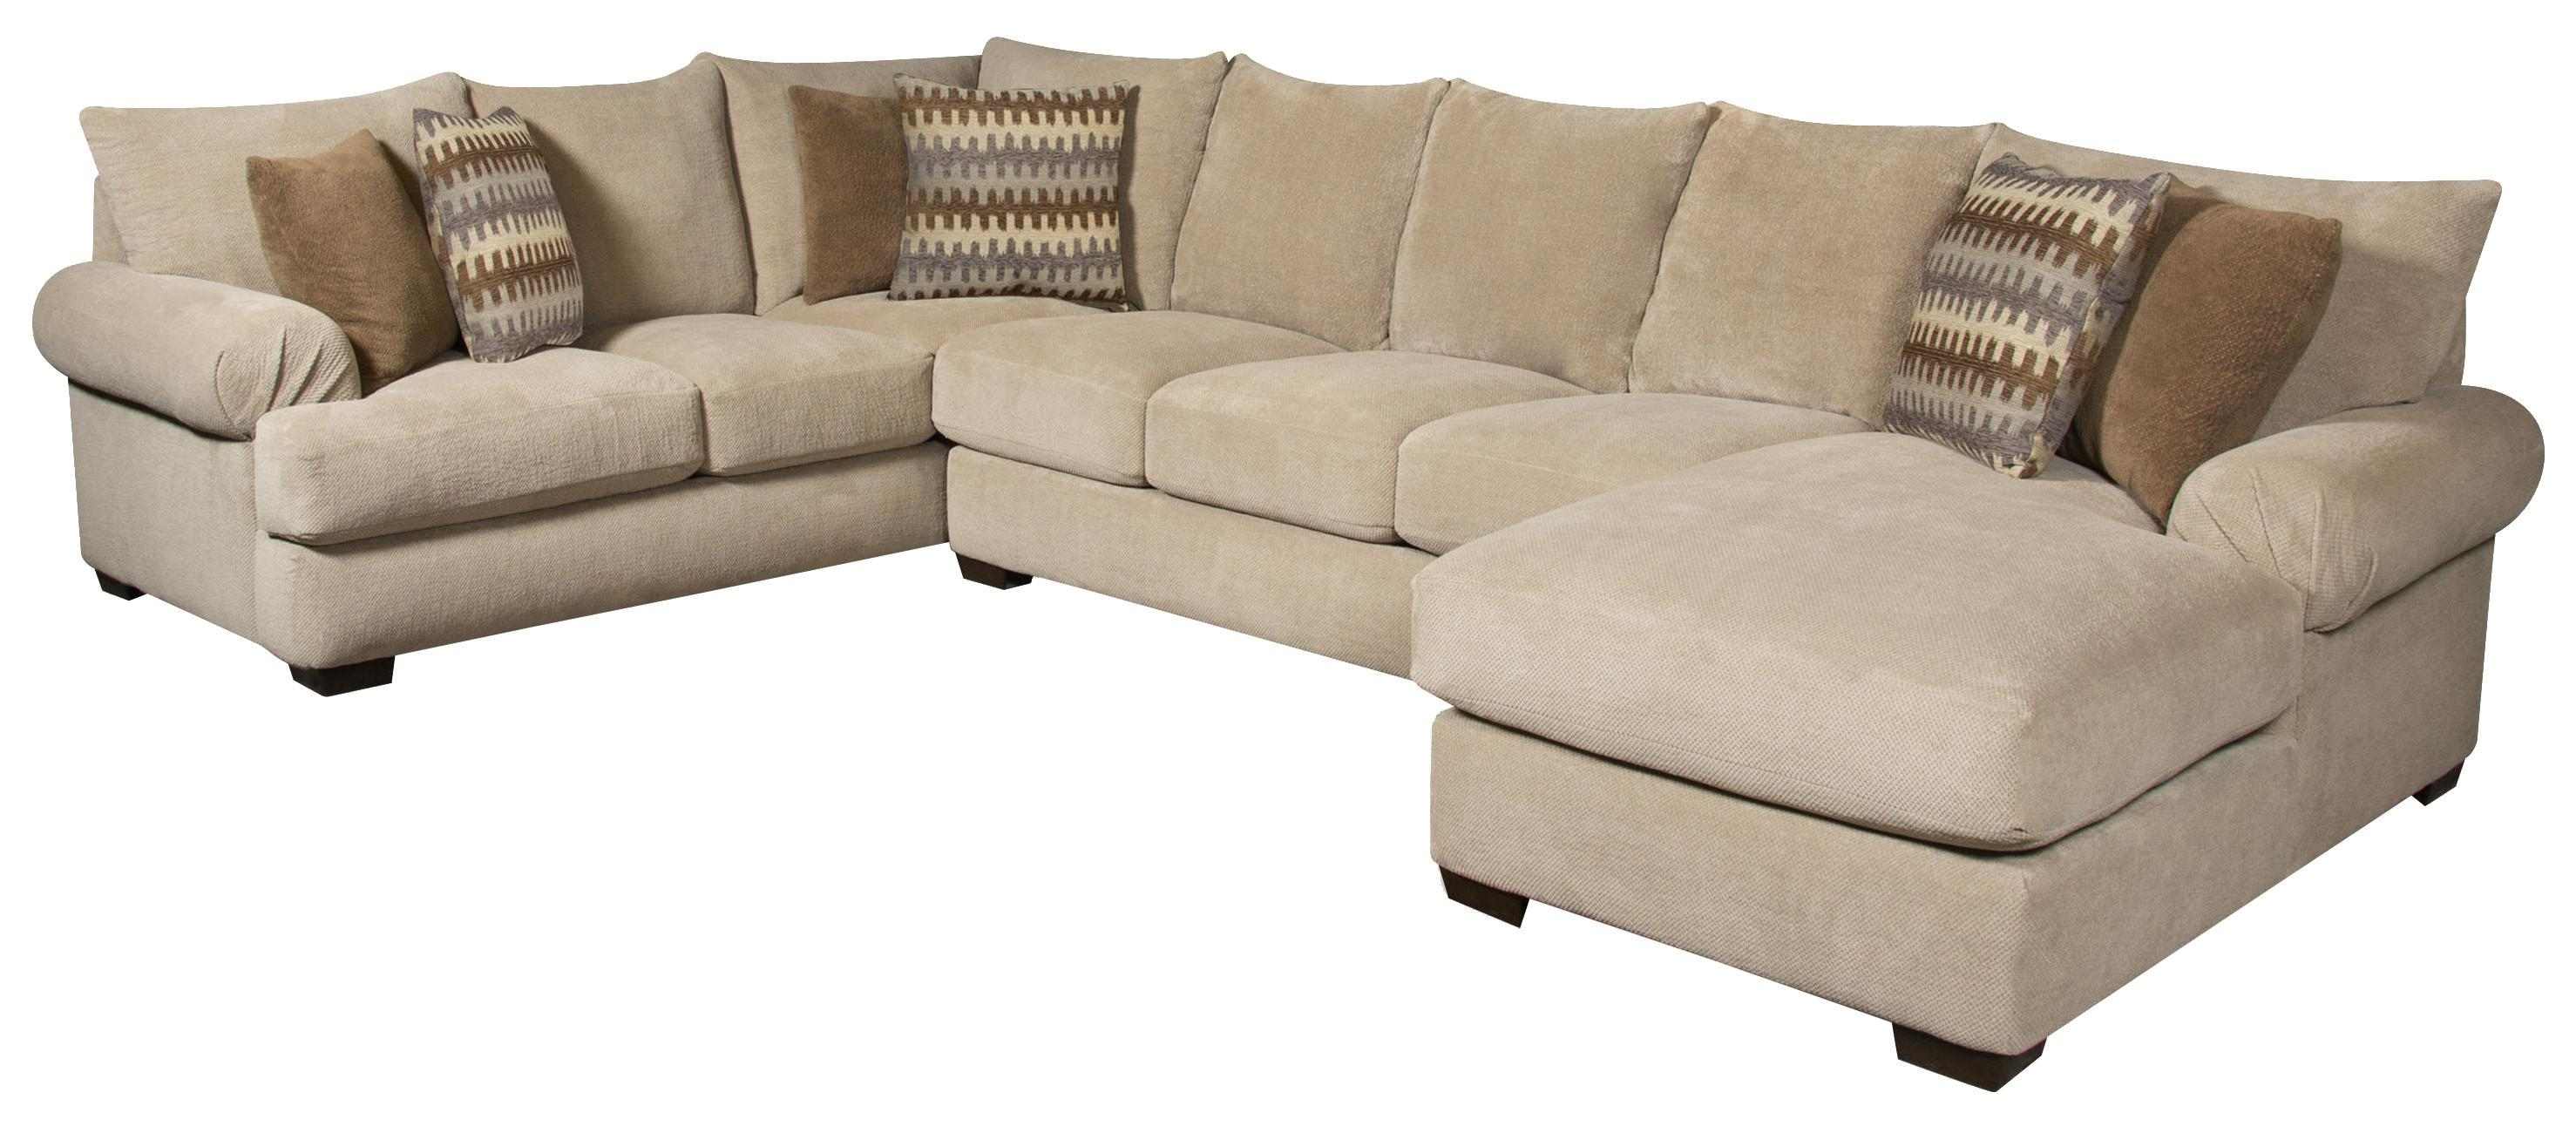 Featured Image of Corinthian Sectional Sofas